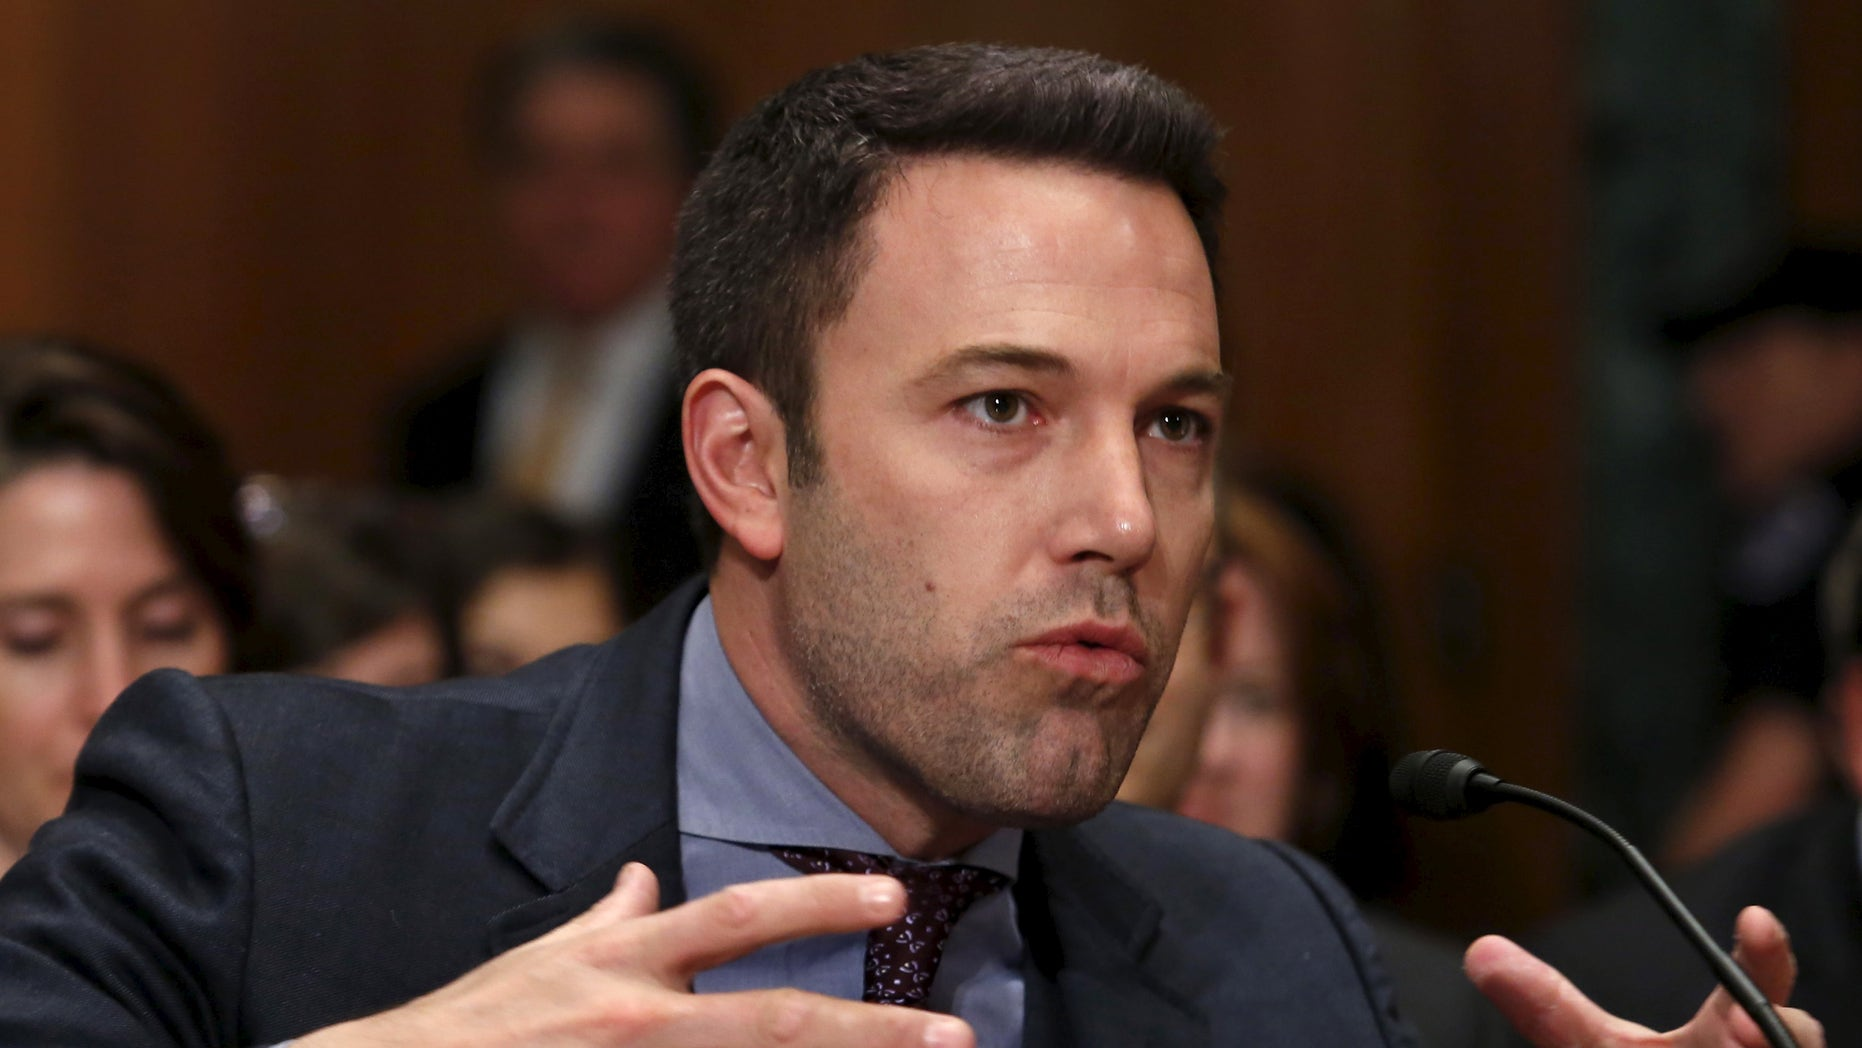 March 26, 2015. Ben Affleck, actor, filmmaker and founder of the Eastern Congo Initiative, testifies before a Senate Appropriations State, Foreign Operations and Related Programs Subcommittee hearing on Capitol Hill in Washington.